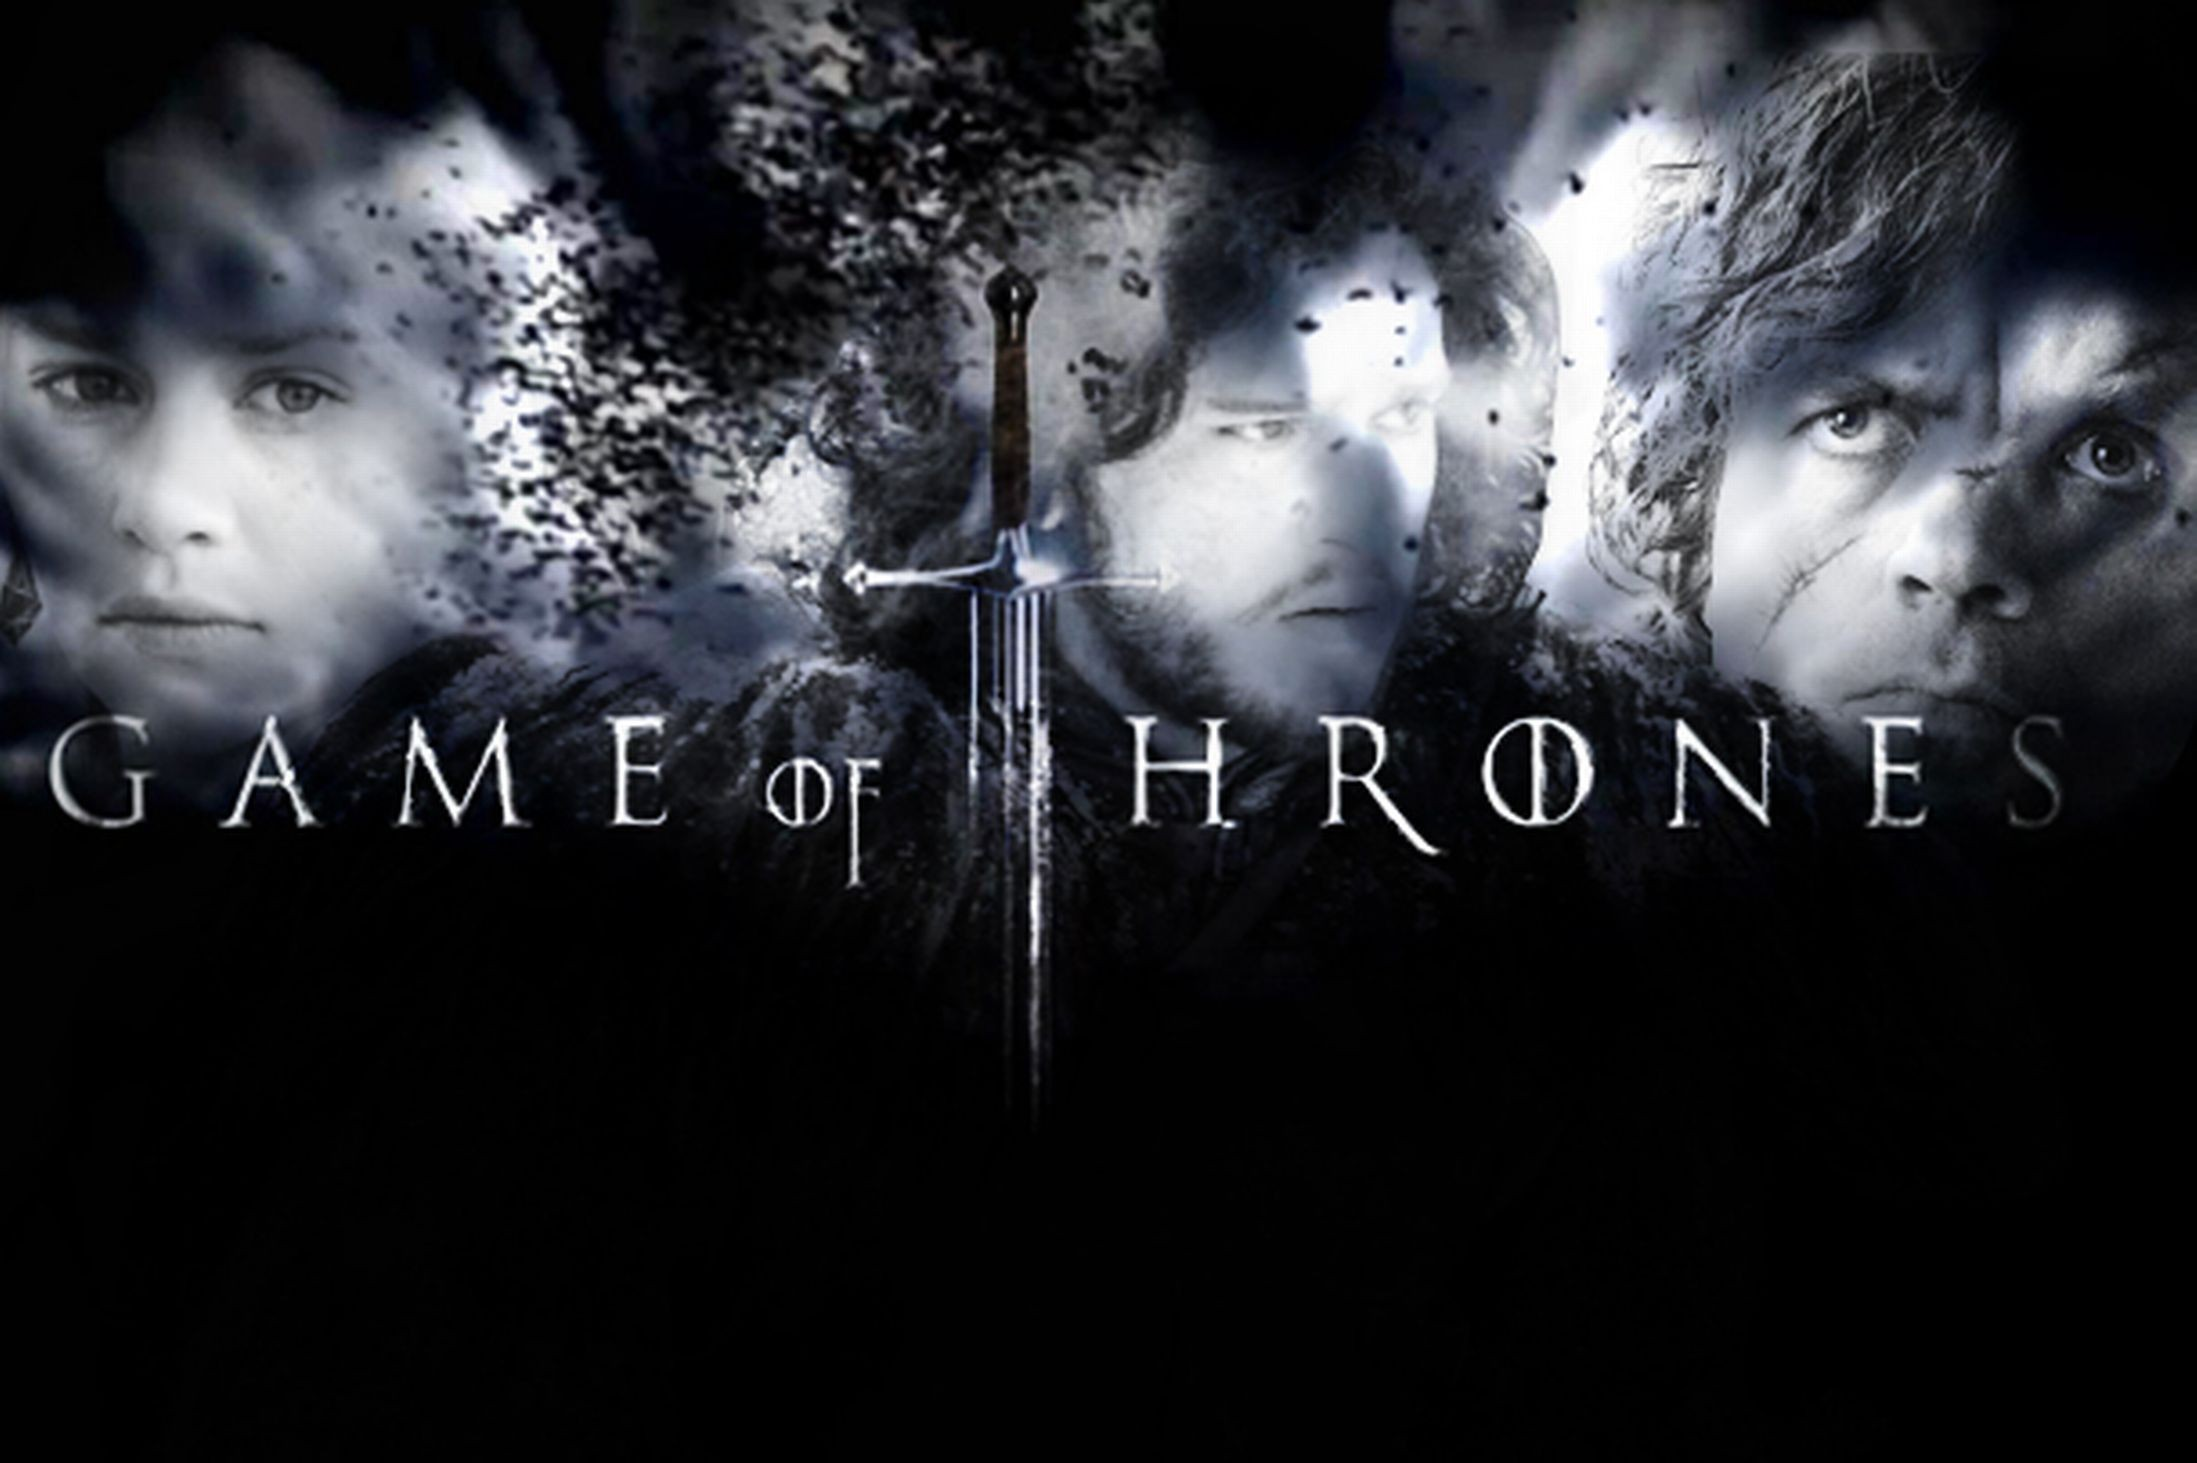 Game Of Thrones Wallpaper Android: Game Of Thrones Desktop Wallpaper ·① Download Free